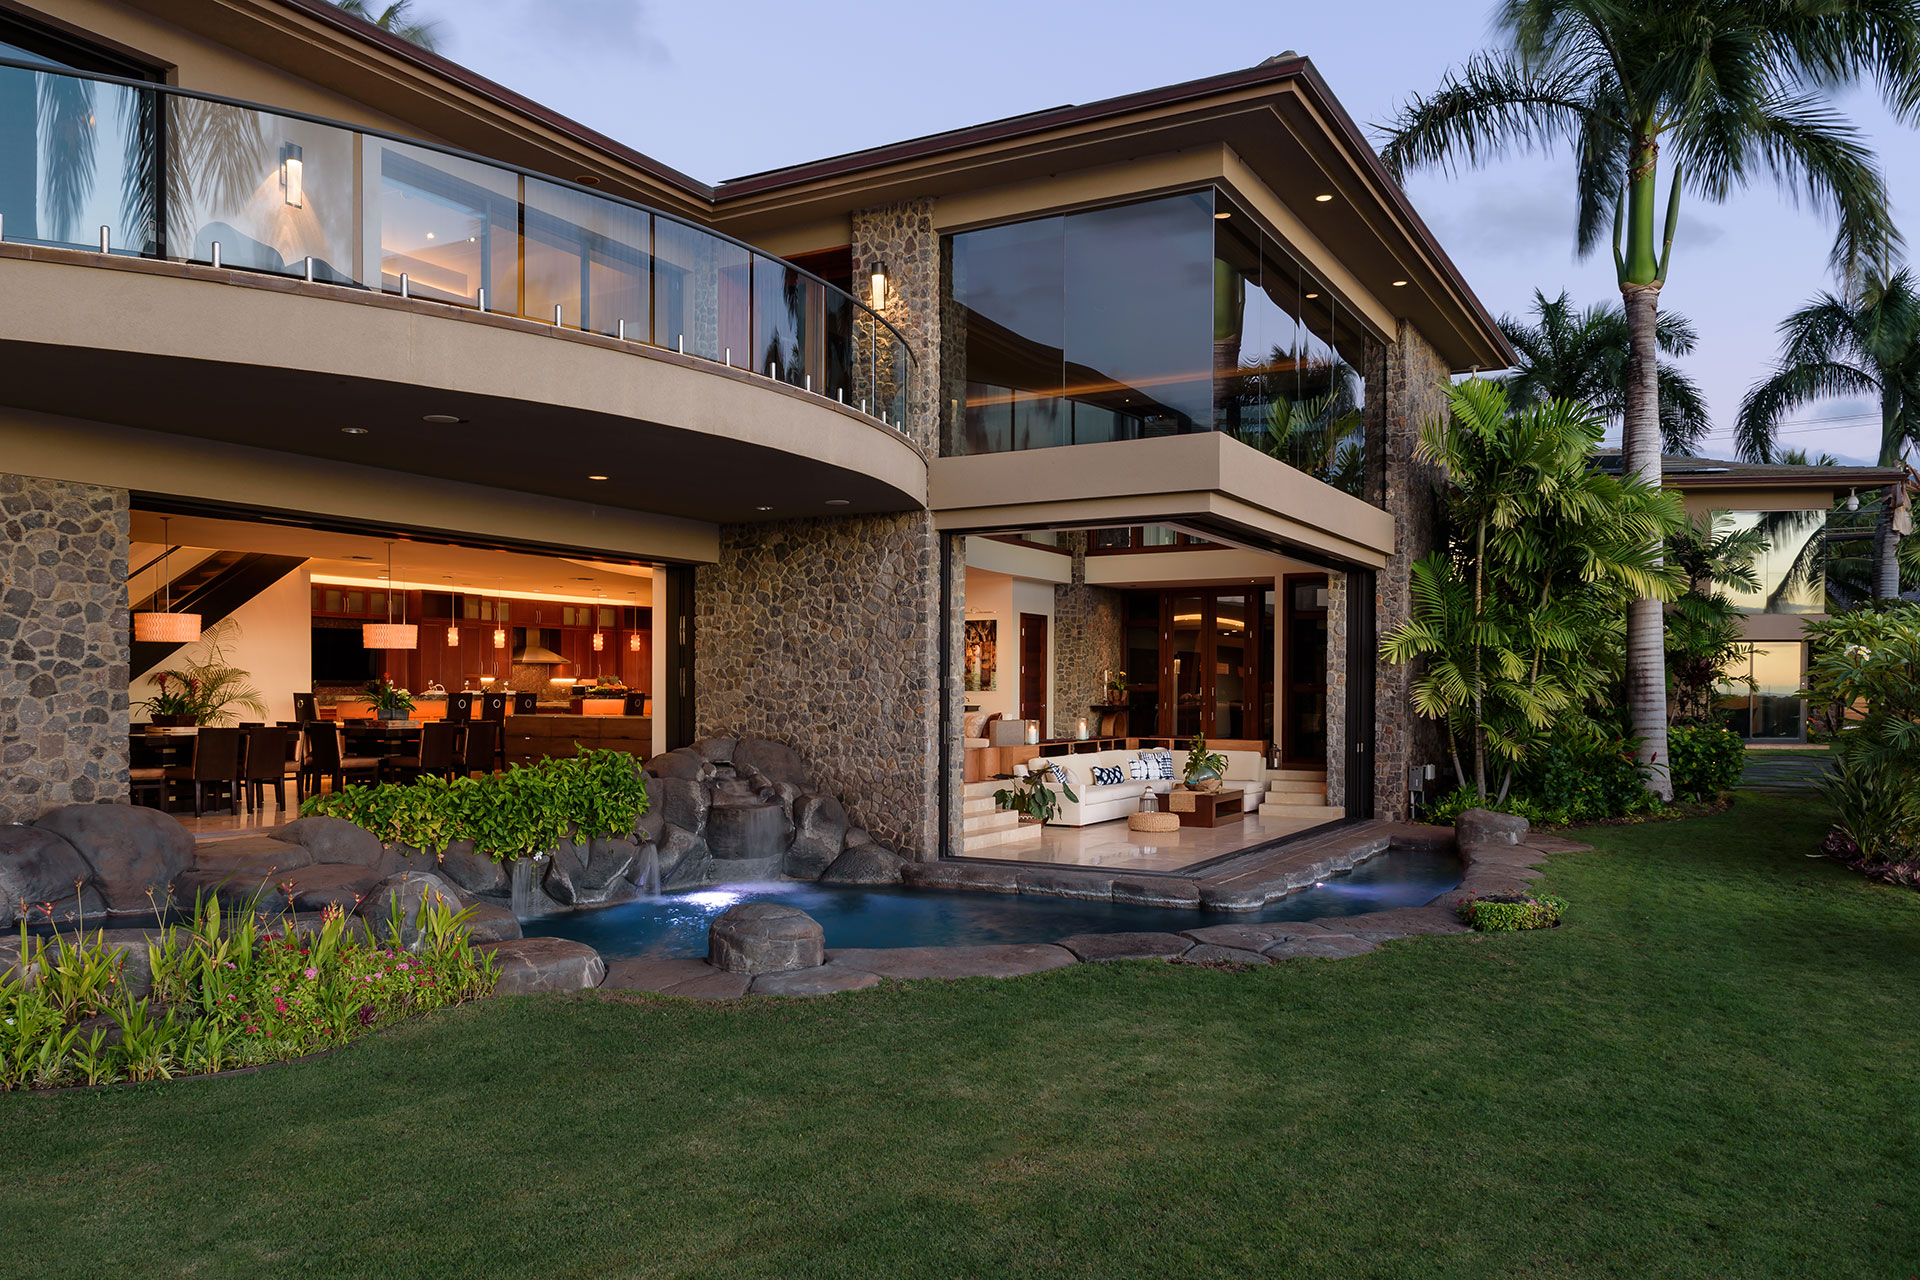 Completed in late 2009 and updated in 2015, this spectacular waterfront estate epitomizes Pacific Rim architecture.